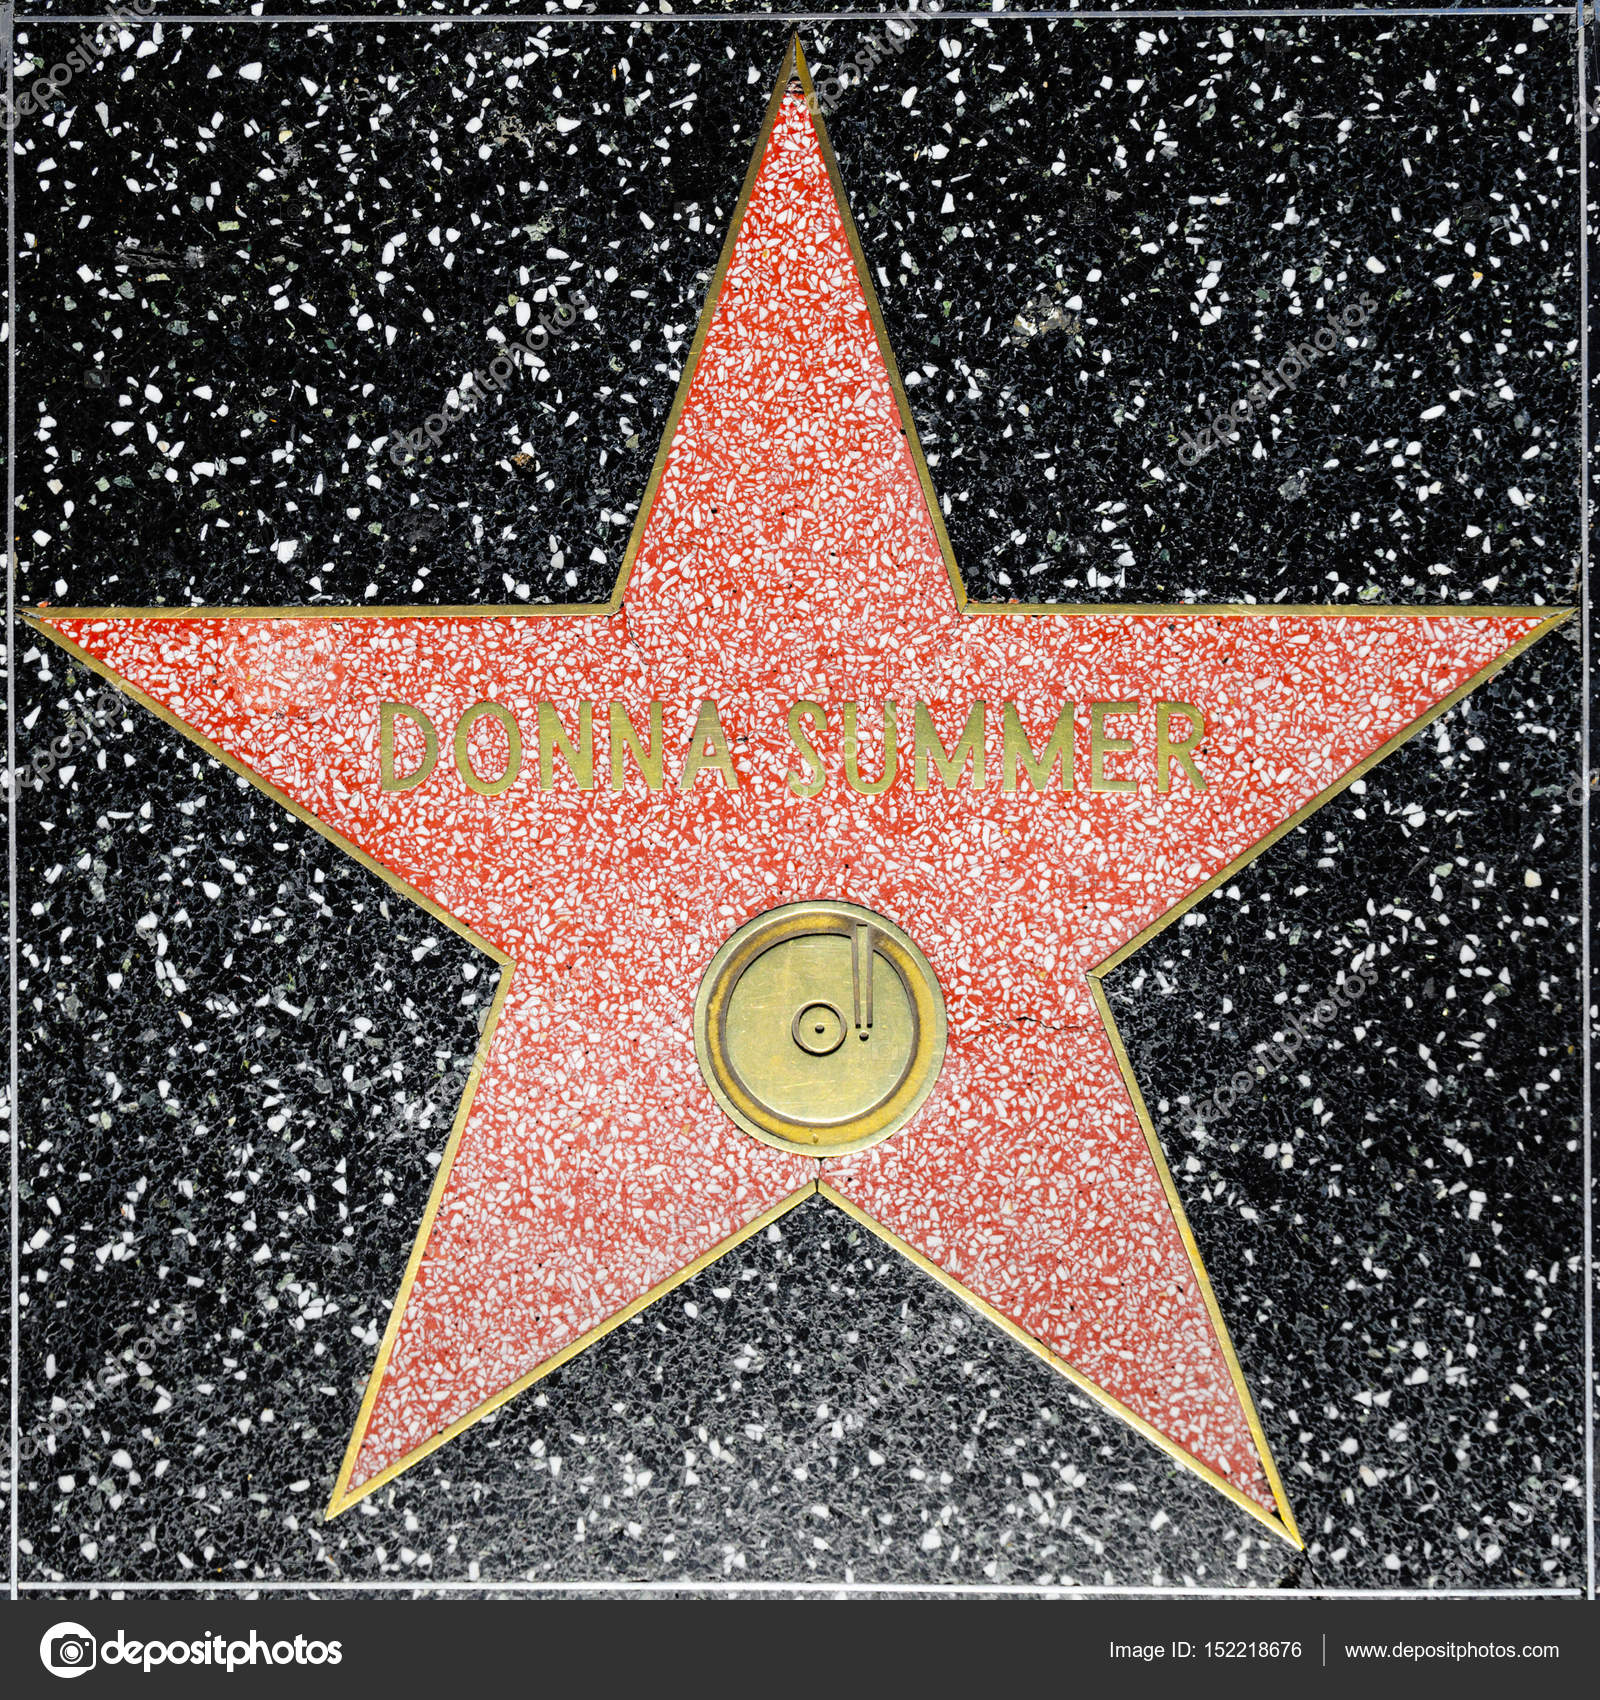 Pmages: donna summers | Donna Summers star on Hollywood Walk